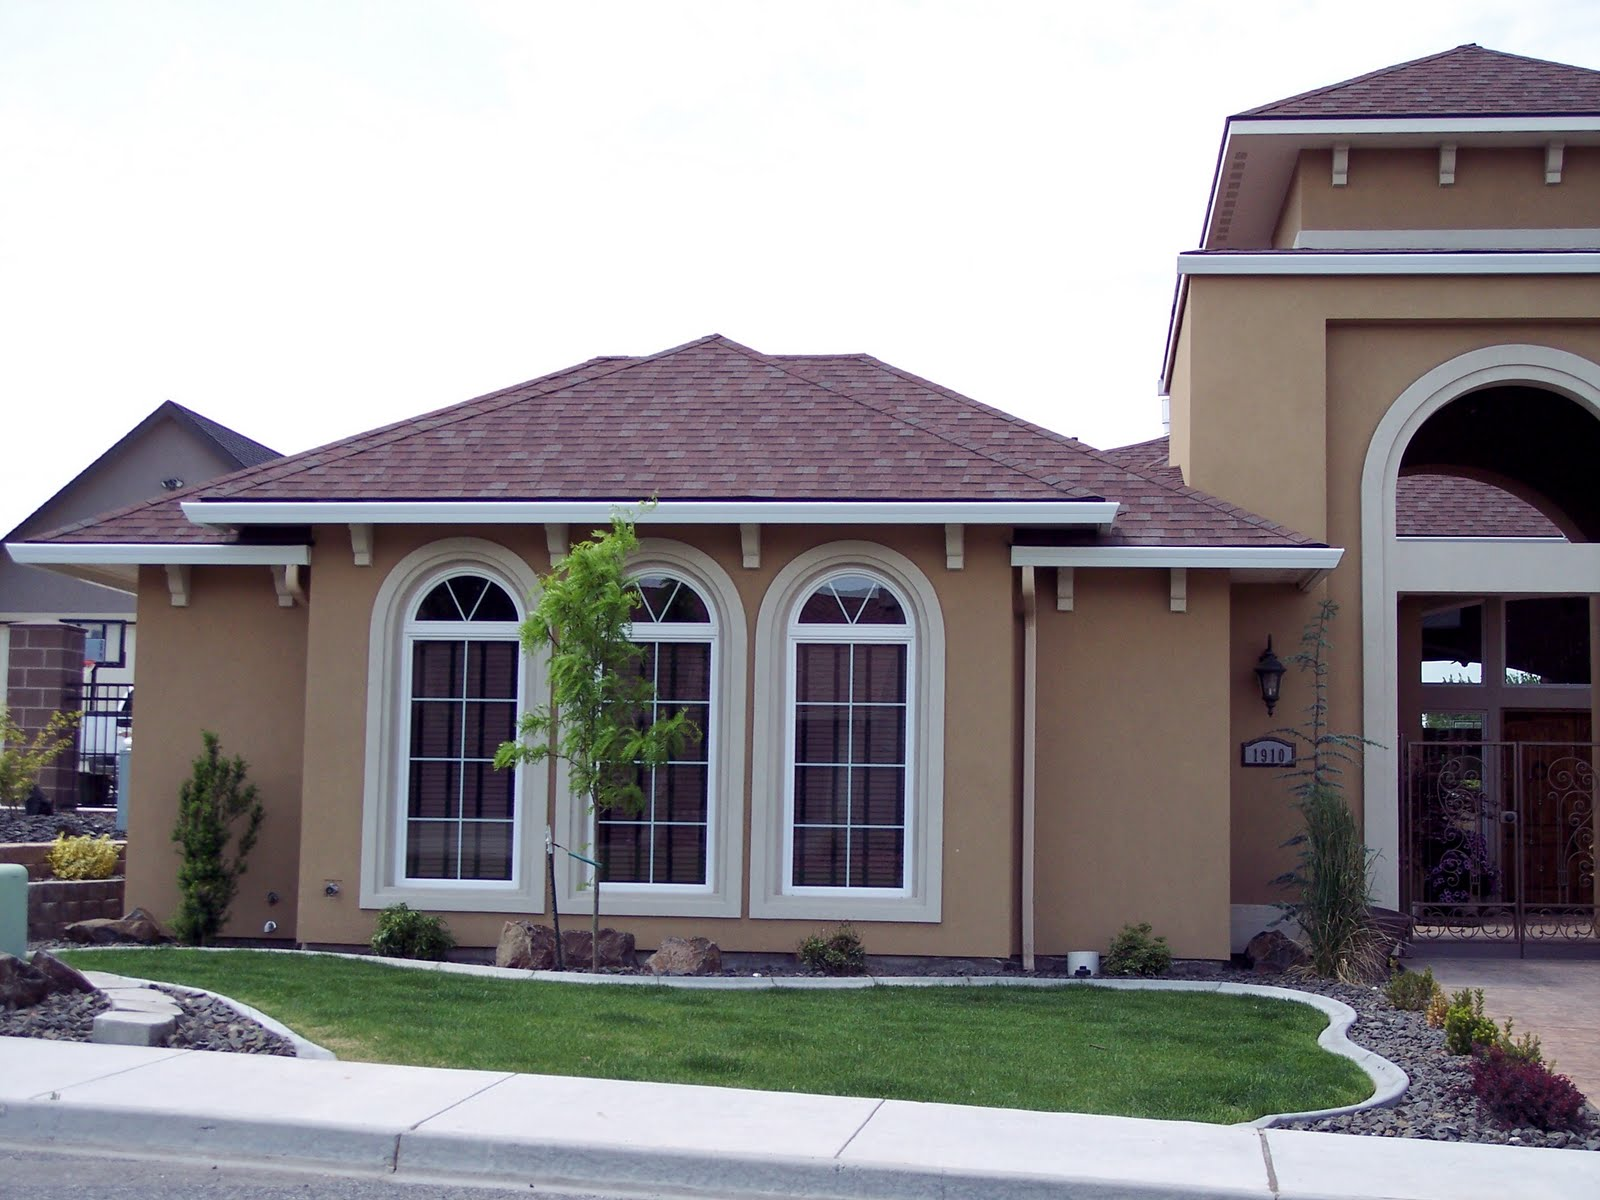 Architectural House Design With Brown Roof And Arched White Window With Bar  And Green Landscape And